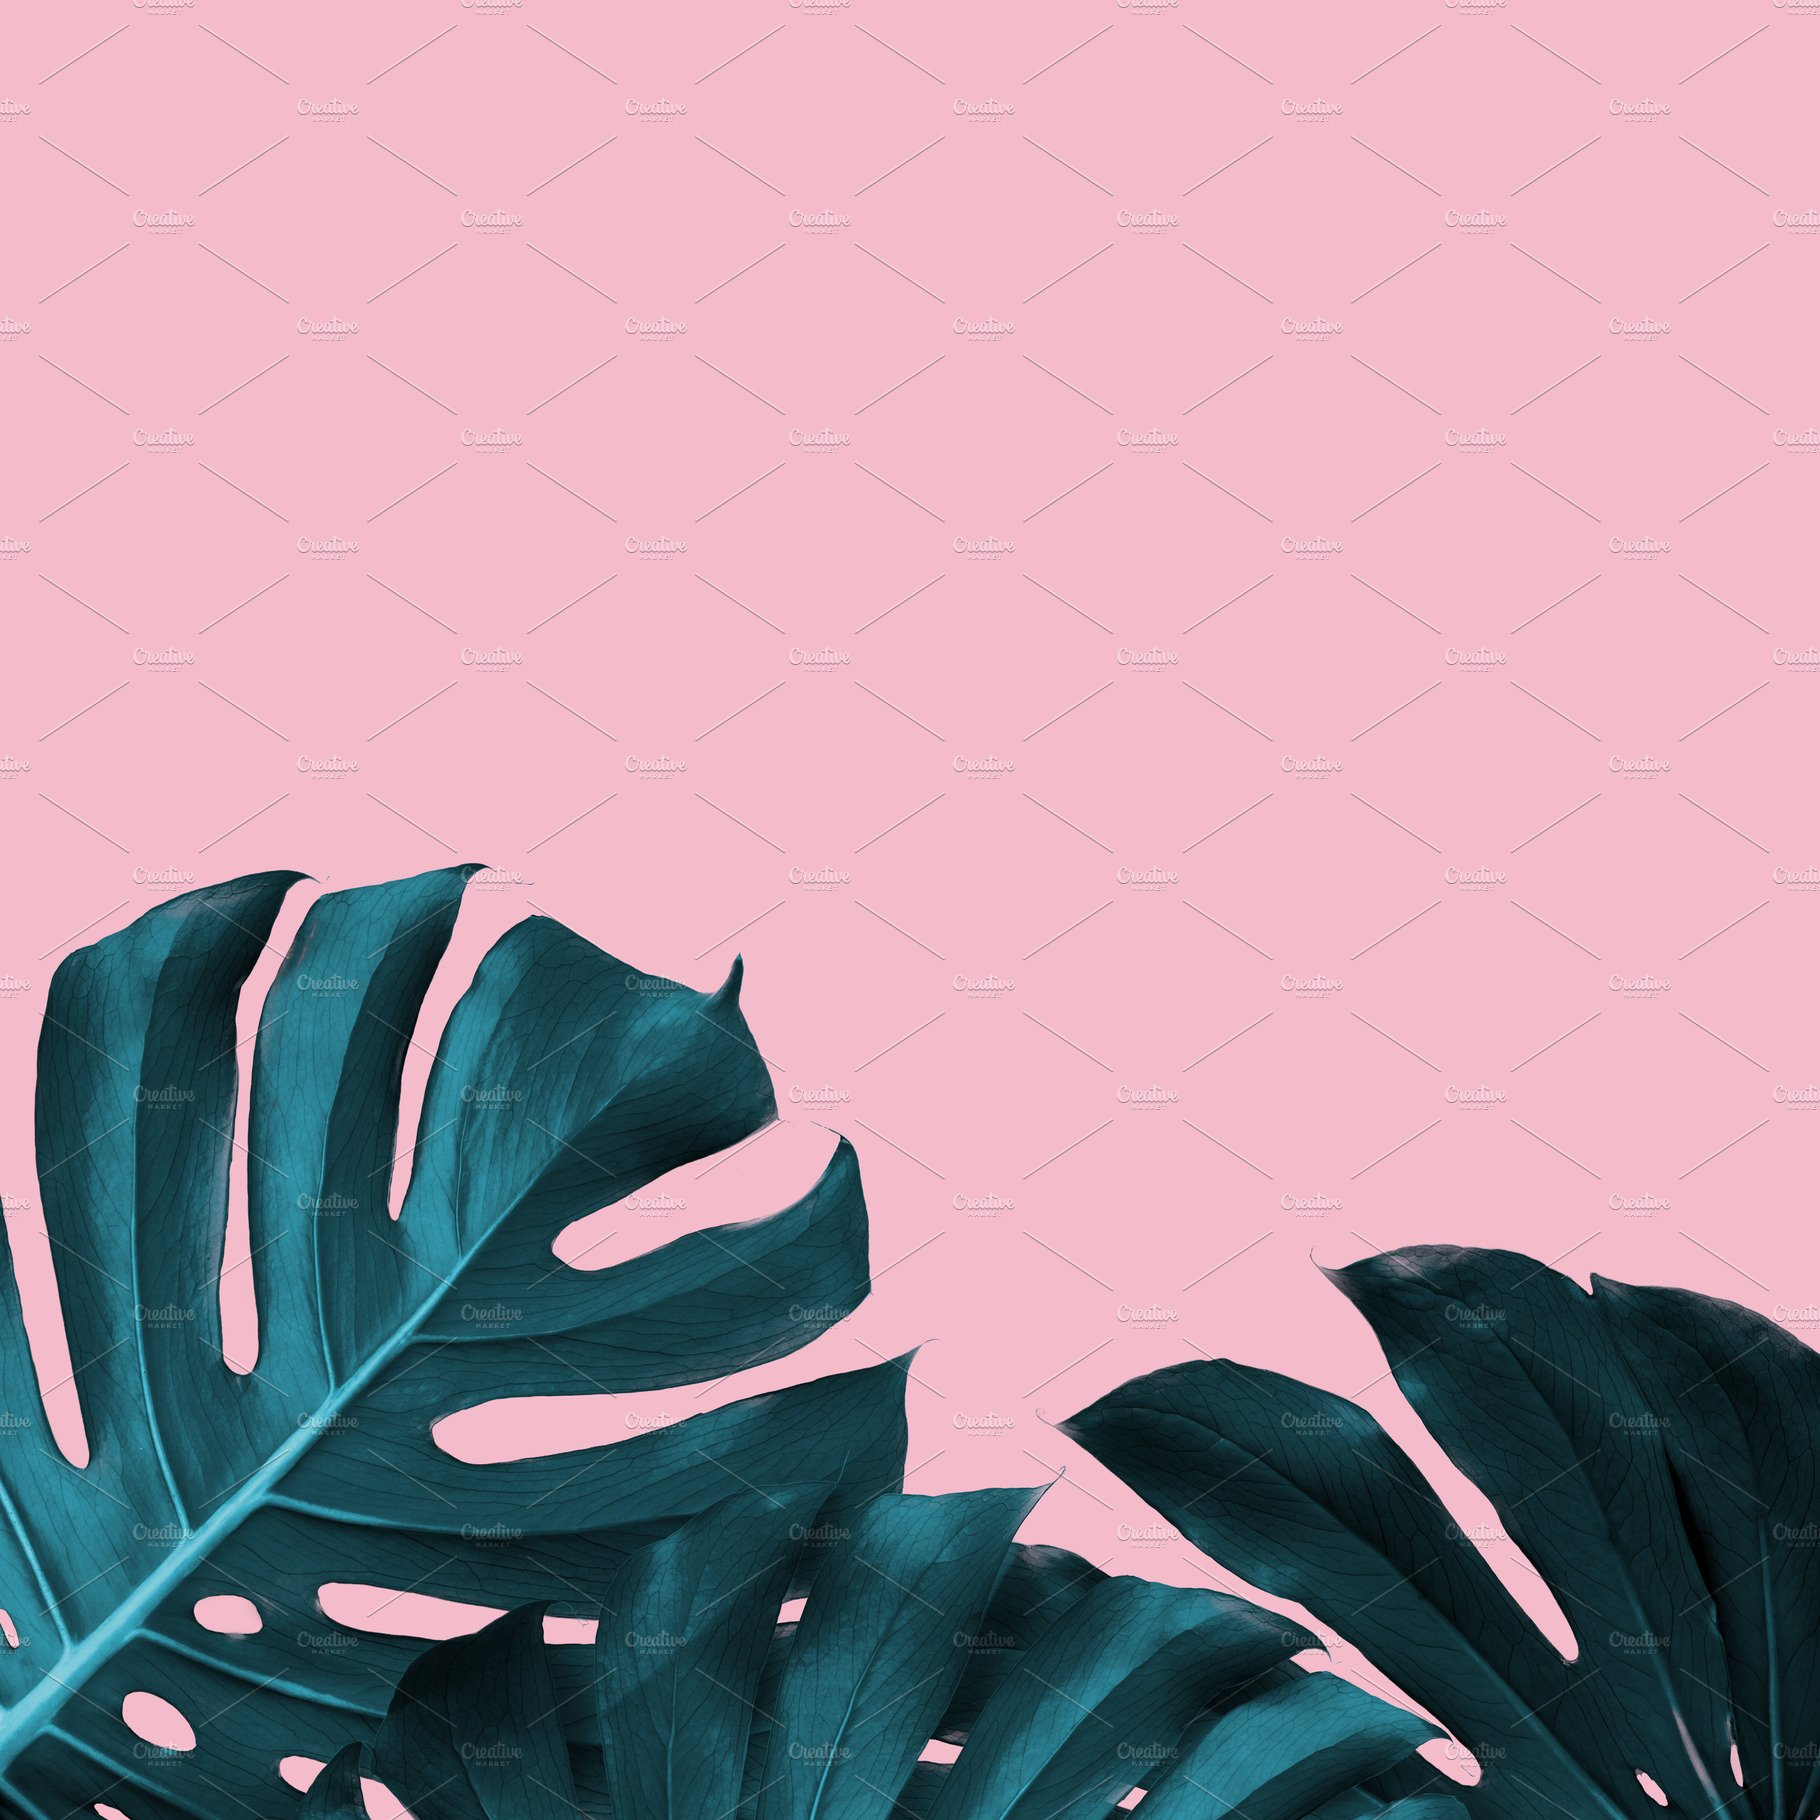 Tropical Leaves Of Monstera On A Pink Duotone Background High Quality Nature Stock Photos Creative Market 10 exotic foliage and leaves digital scrapbook paper pack in trendy tropical style papers in black, green, pink. tropical leaves of monstera on a pink duotone background